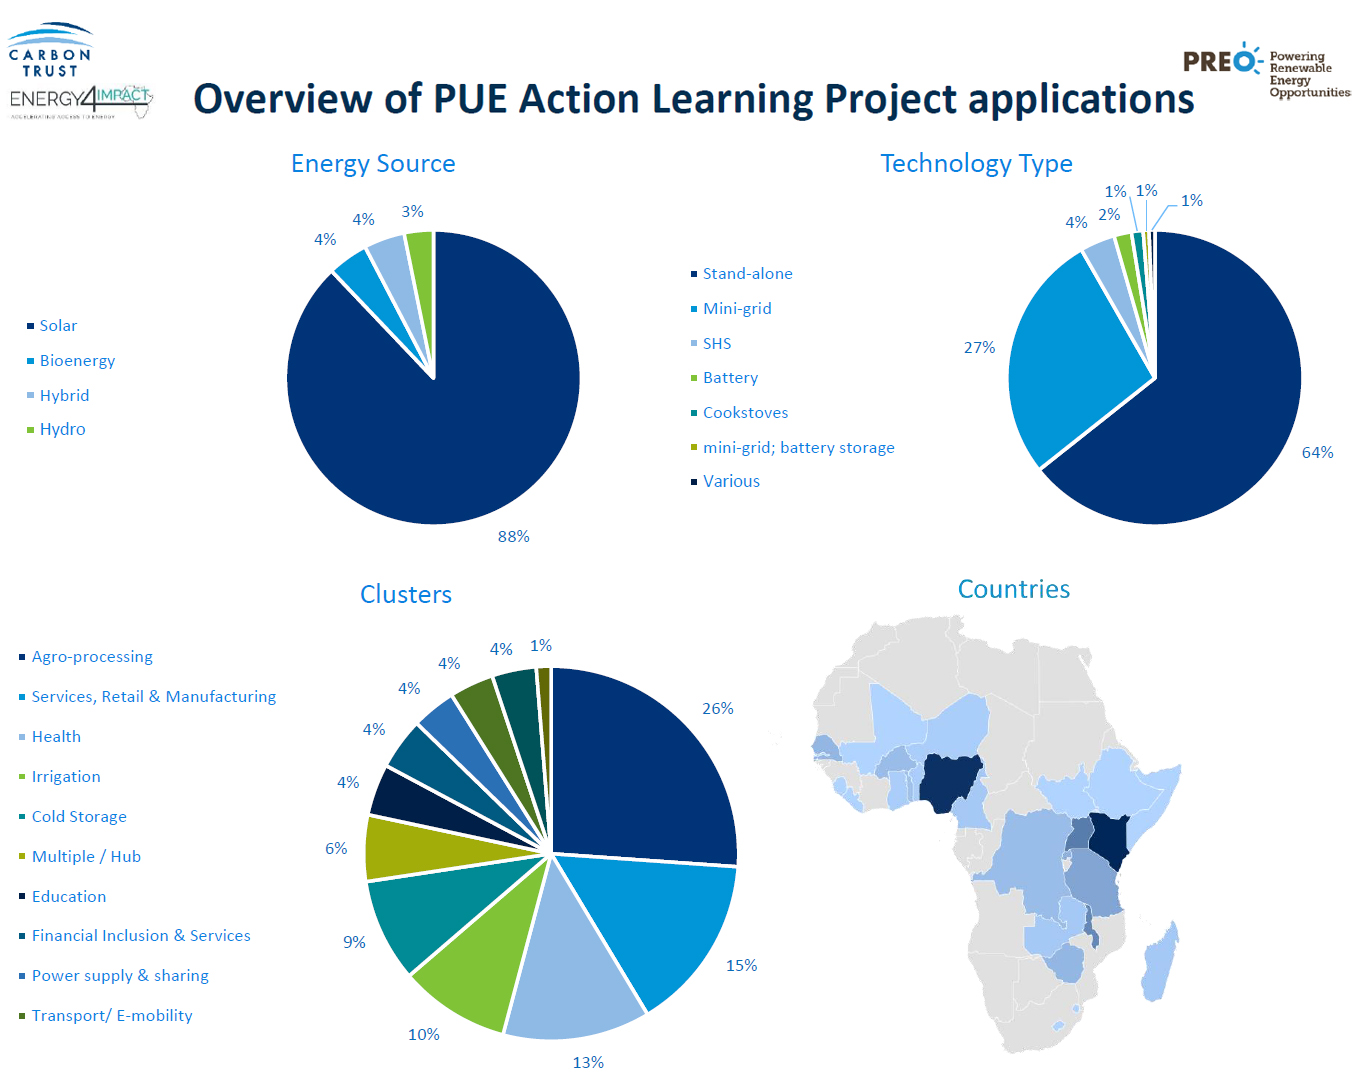 Overview of productive use of energy action learning projects